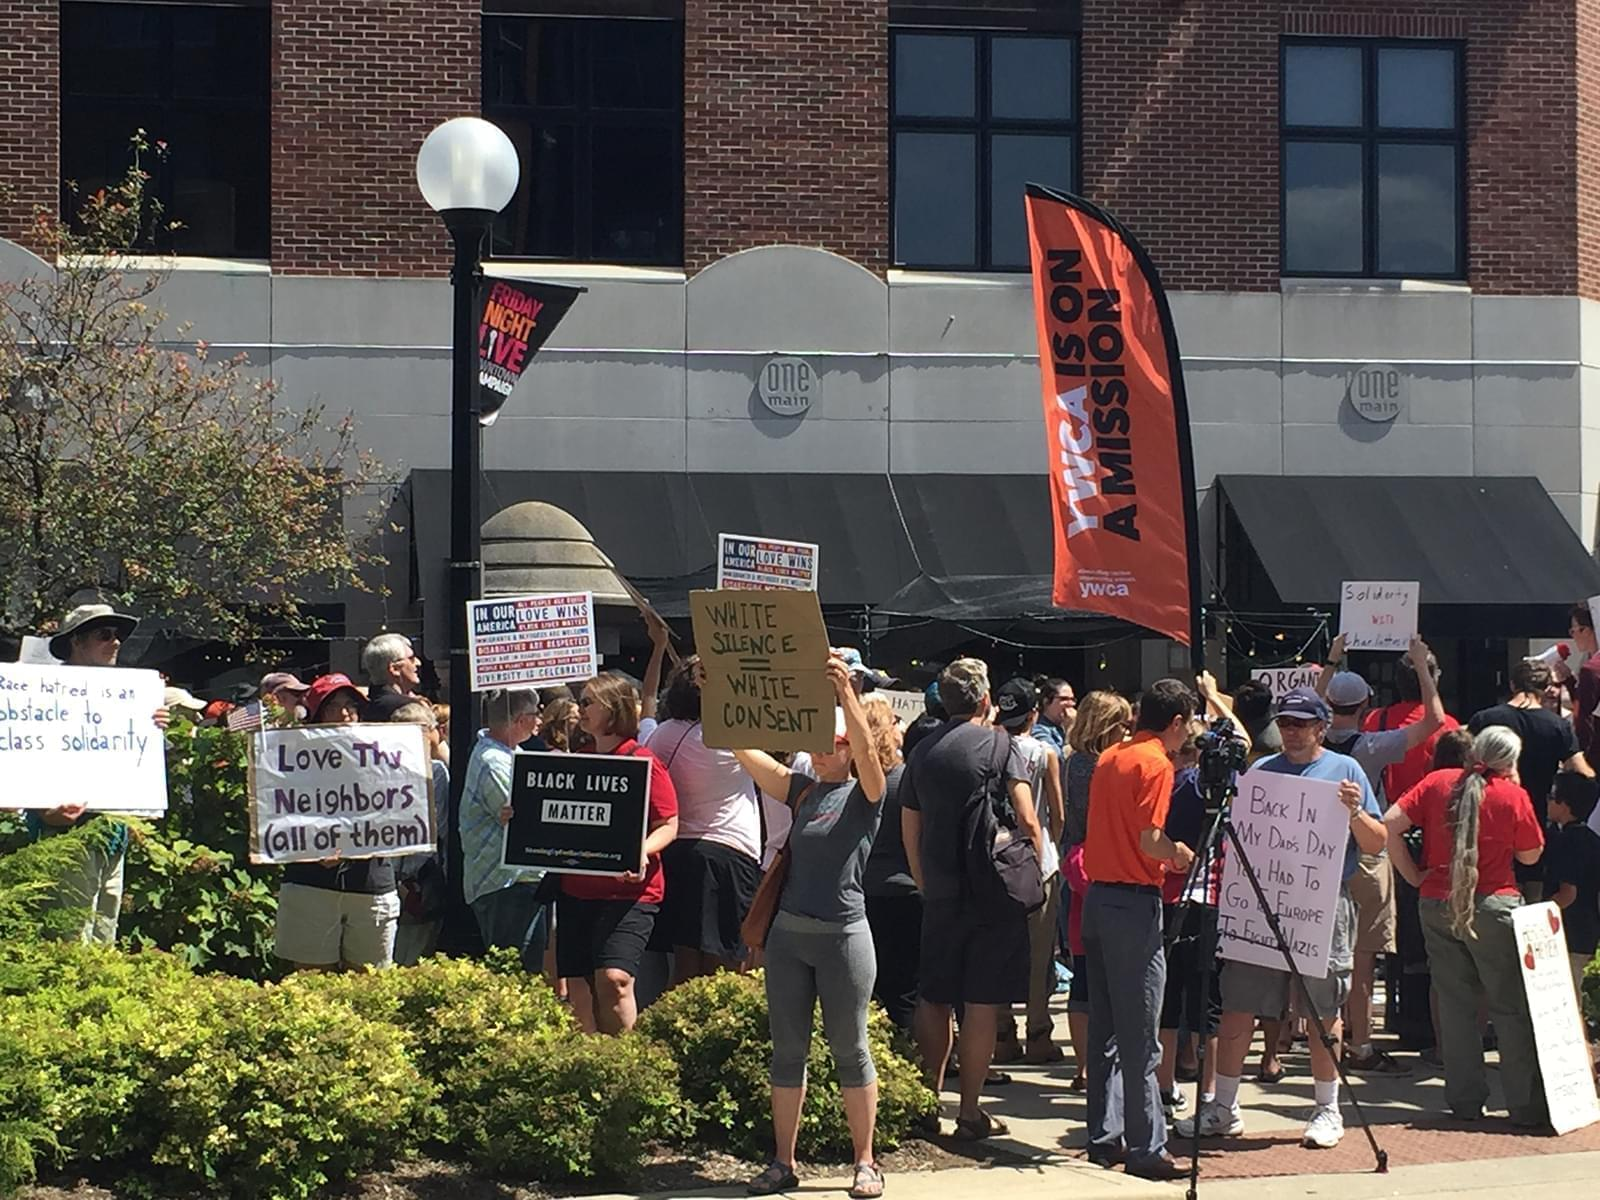 A crowd rallies against fascism and racism Sunday in downtown Champaign.